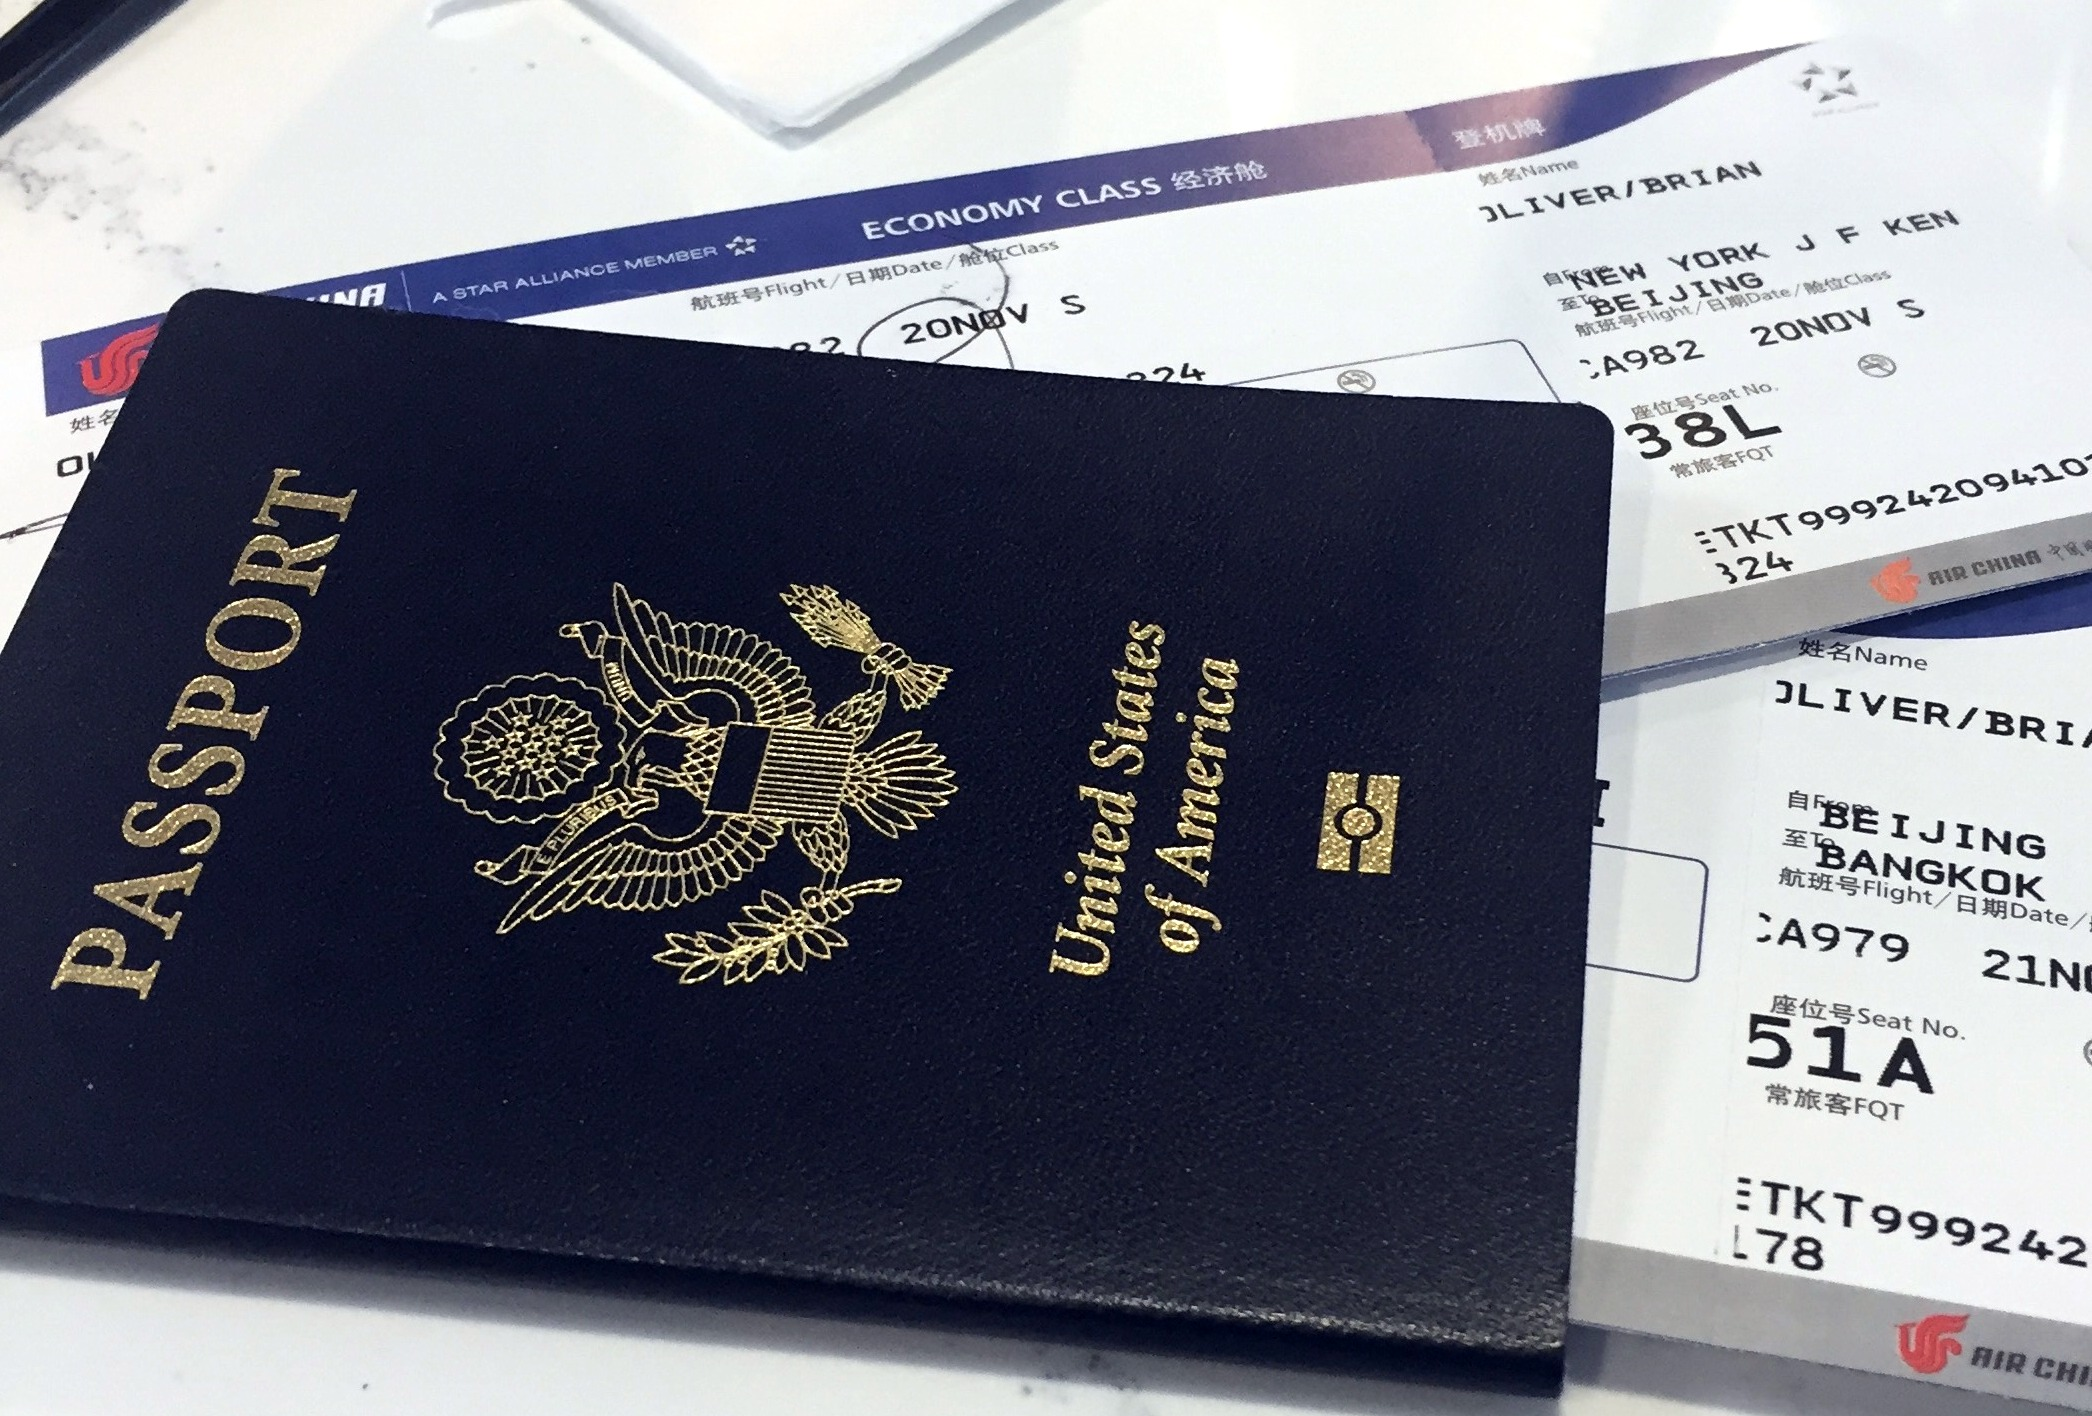 READY, SET, JET! 3 QUICK TIPS TO TRAVEL CHEAP AND SEE THE WORLD